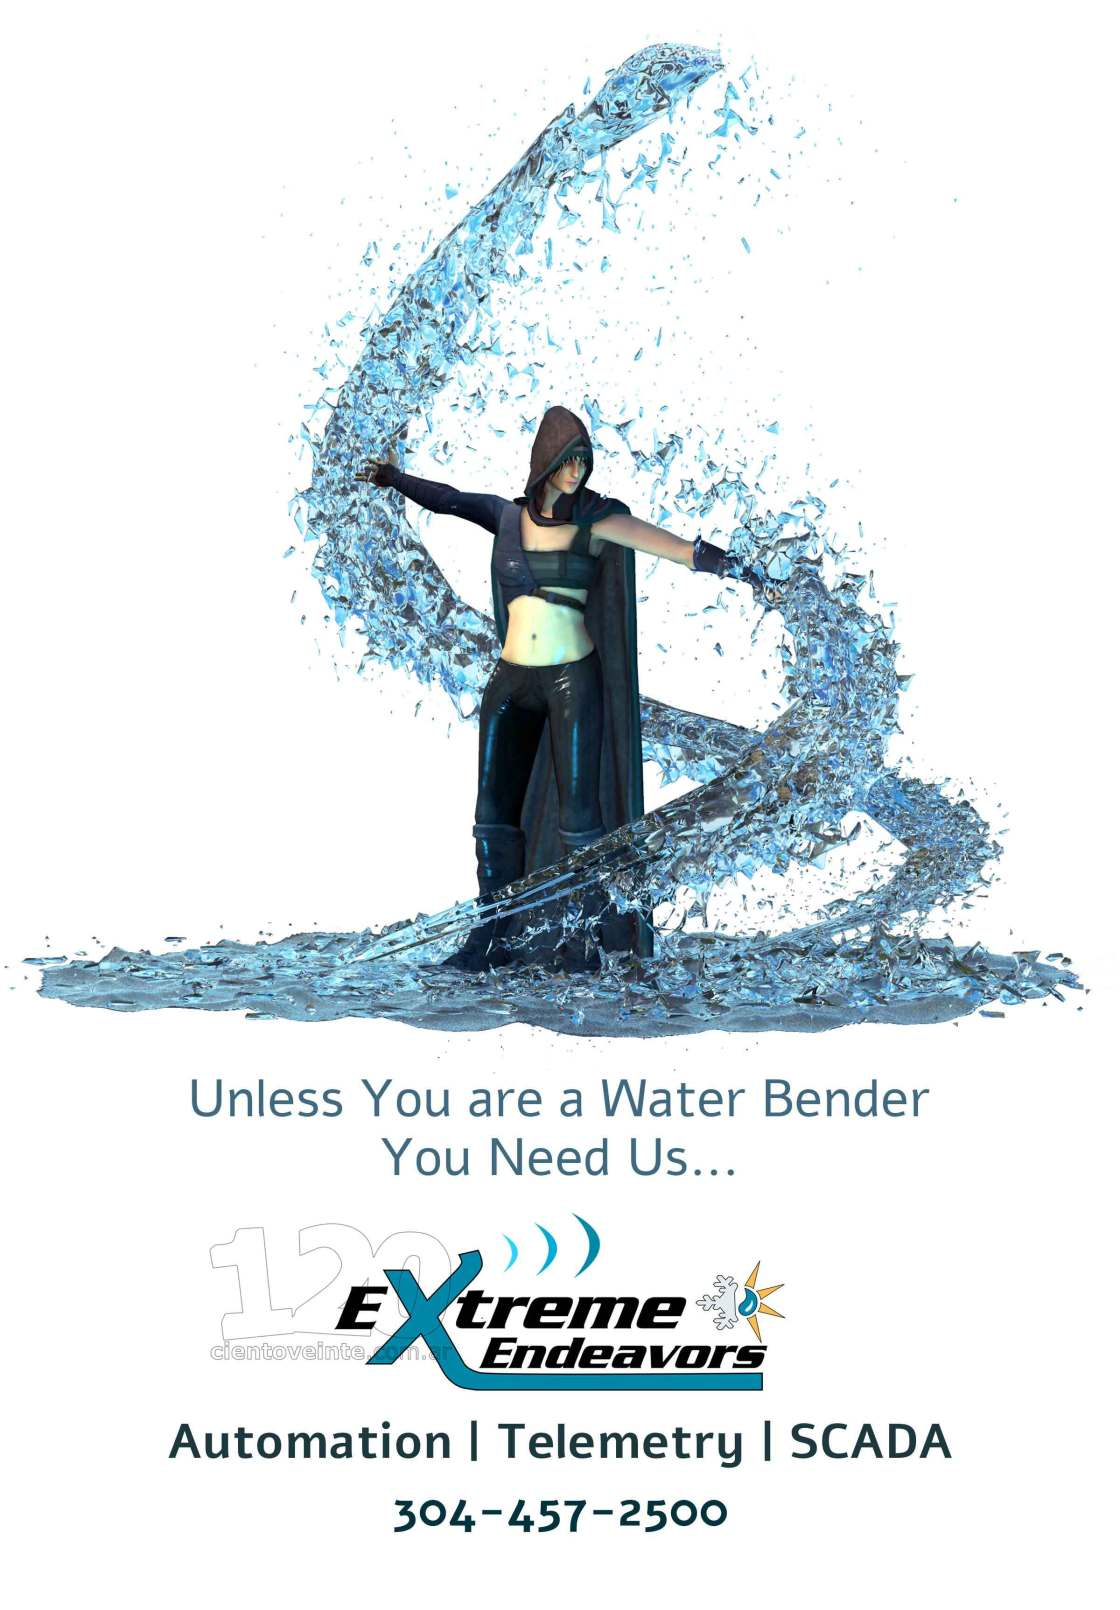 WaterBender-post final version